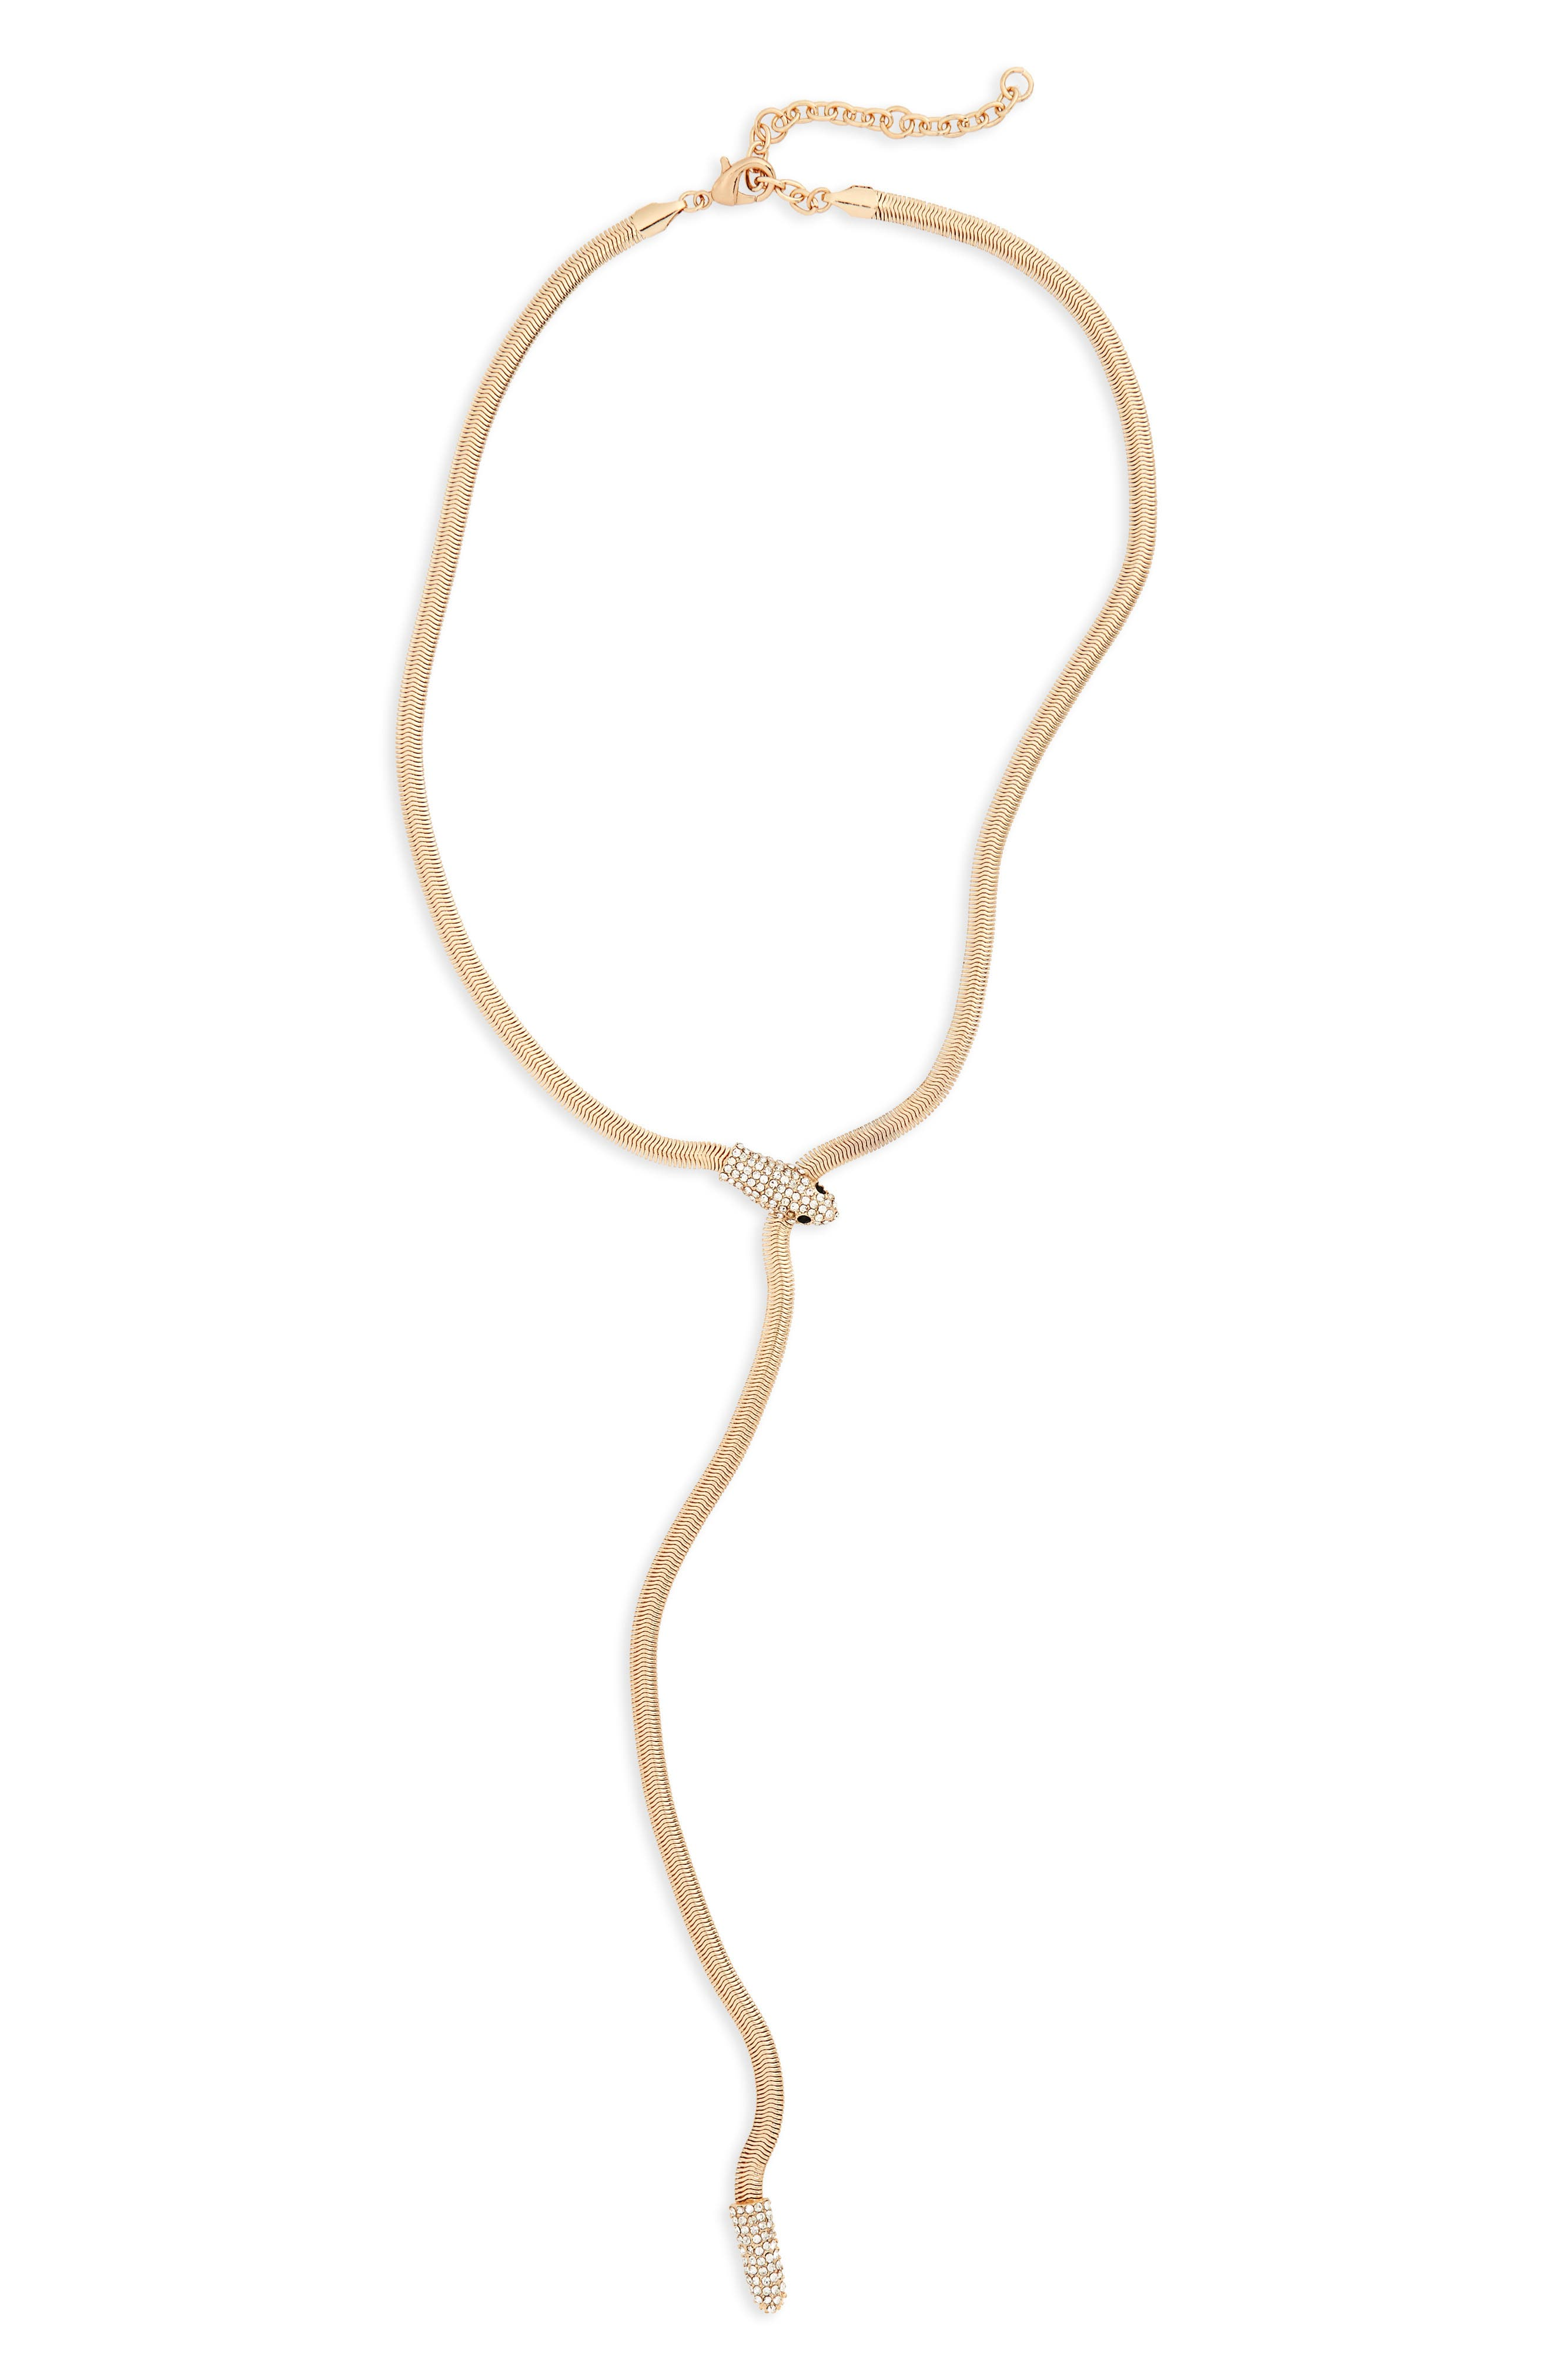 Snake Chain Y-Necklace,                         Main,                         color, Gold/ Crystal